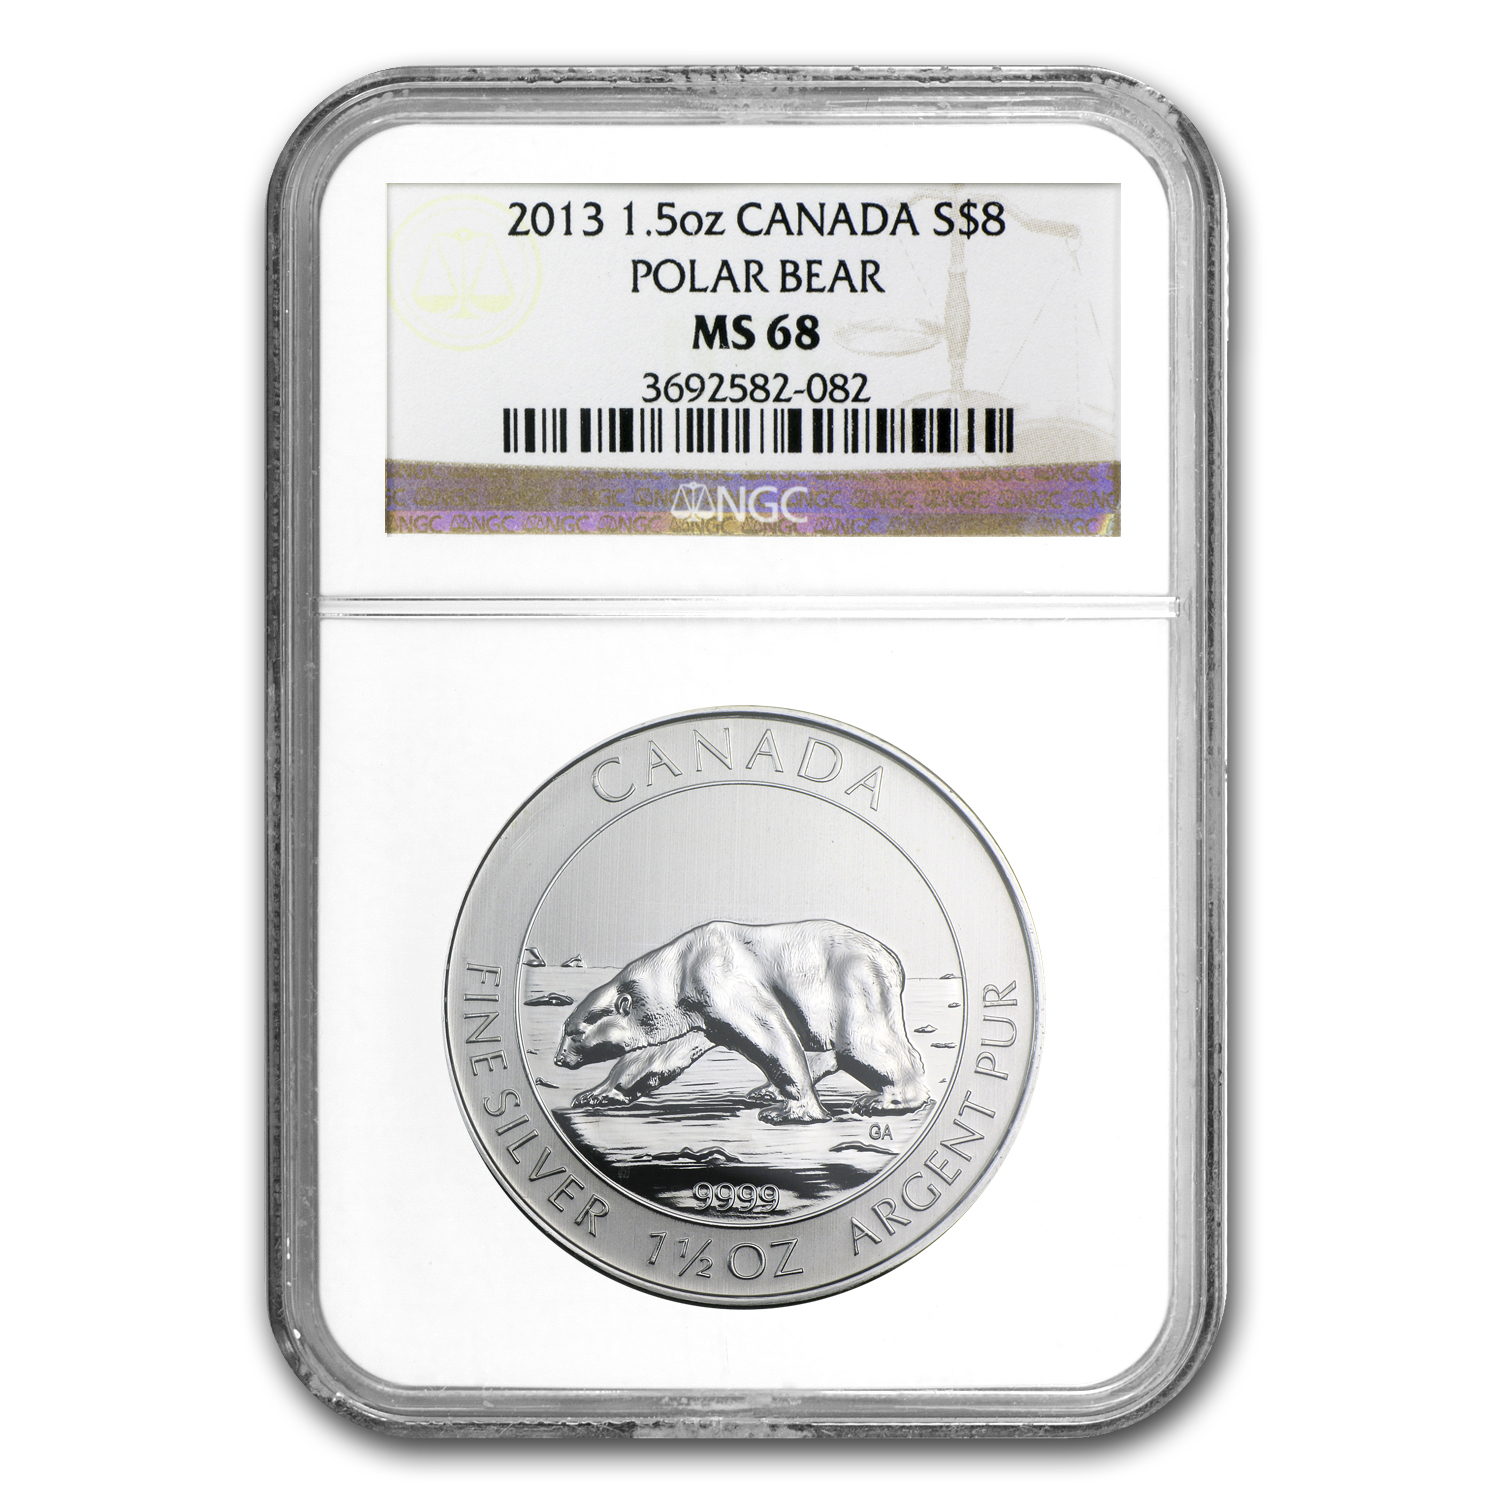 2013 Canada 1.5 oz Silver $8 Polar Bear MS-68 NGC